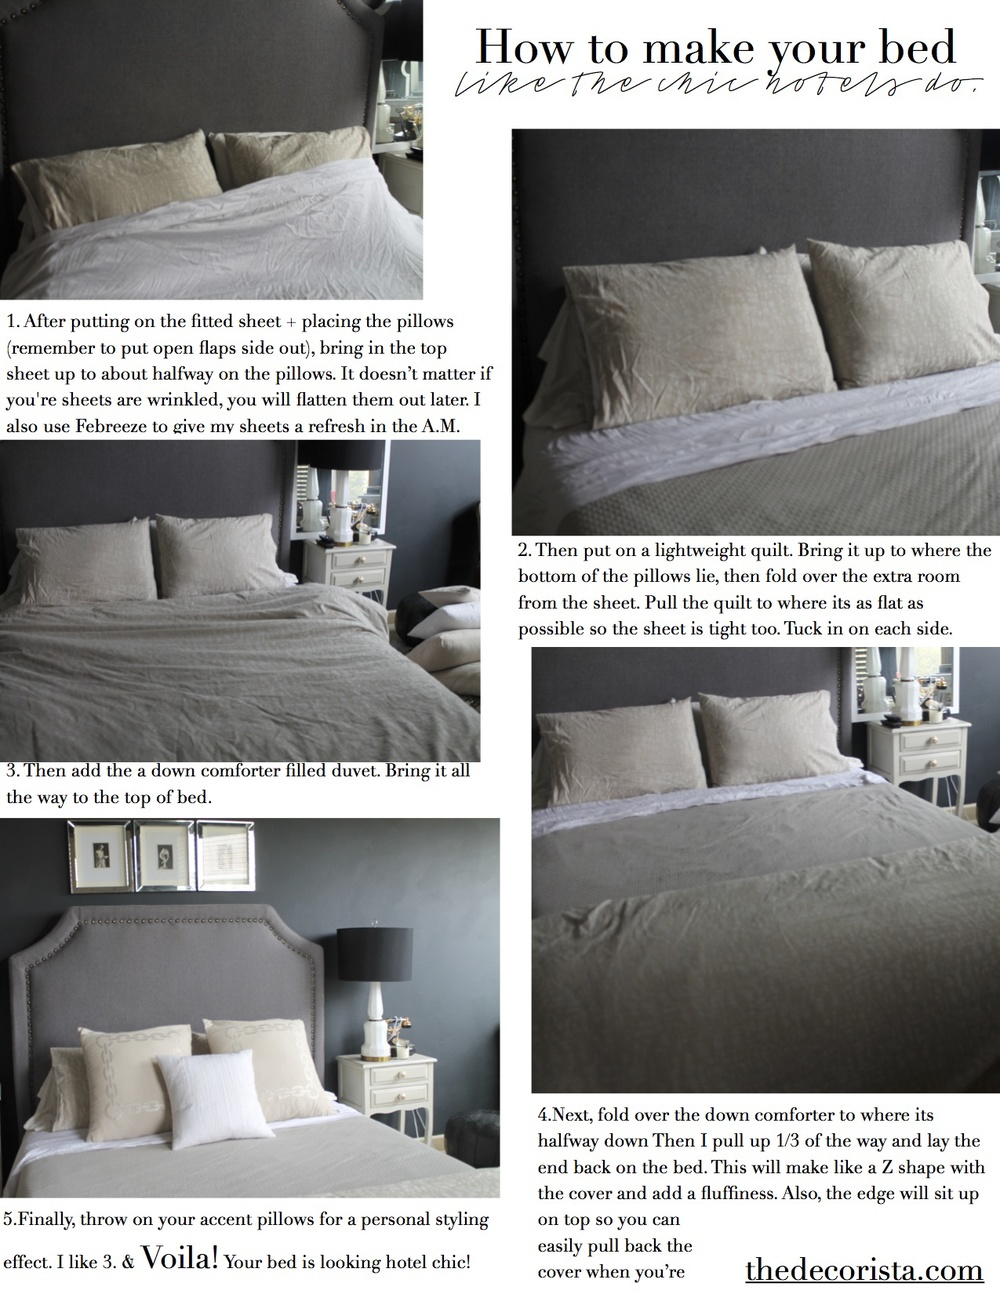 How to make your bed, the hotel way — The Decorista